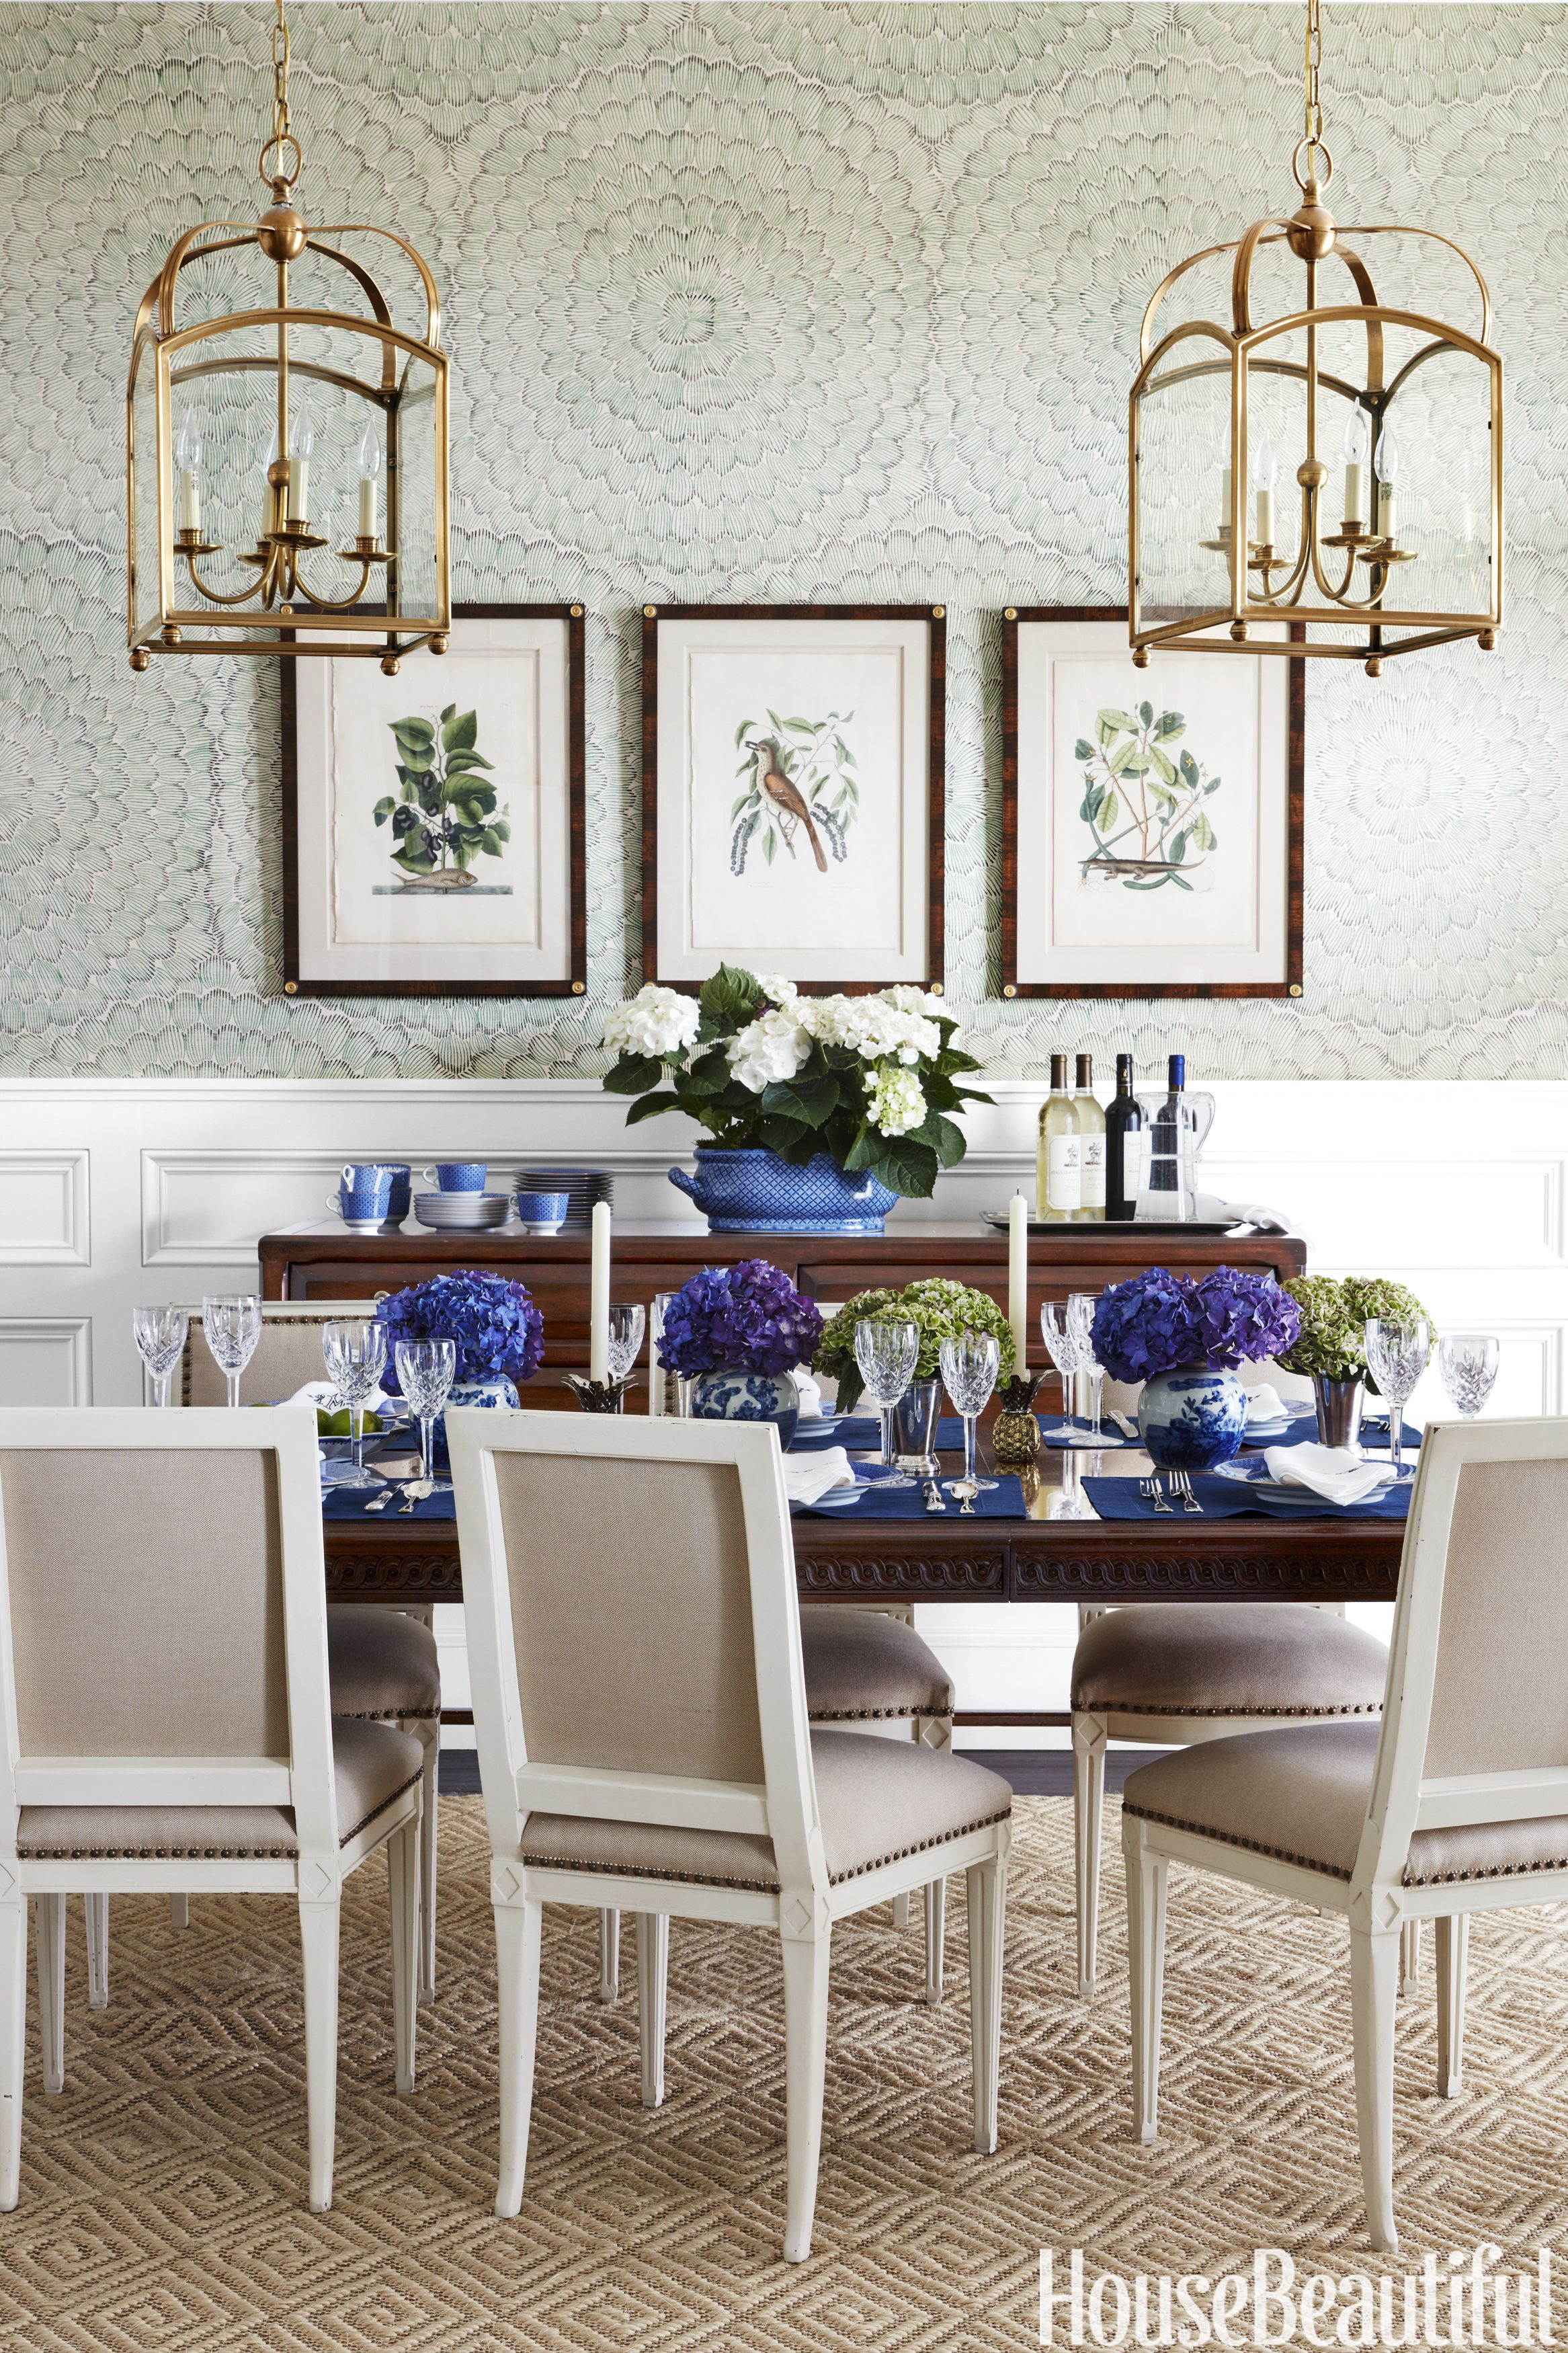 Superbe Create The Ultimate Entertaining Space With These Gorgeous Ideas.